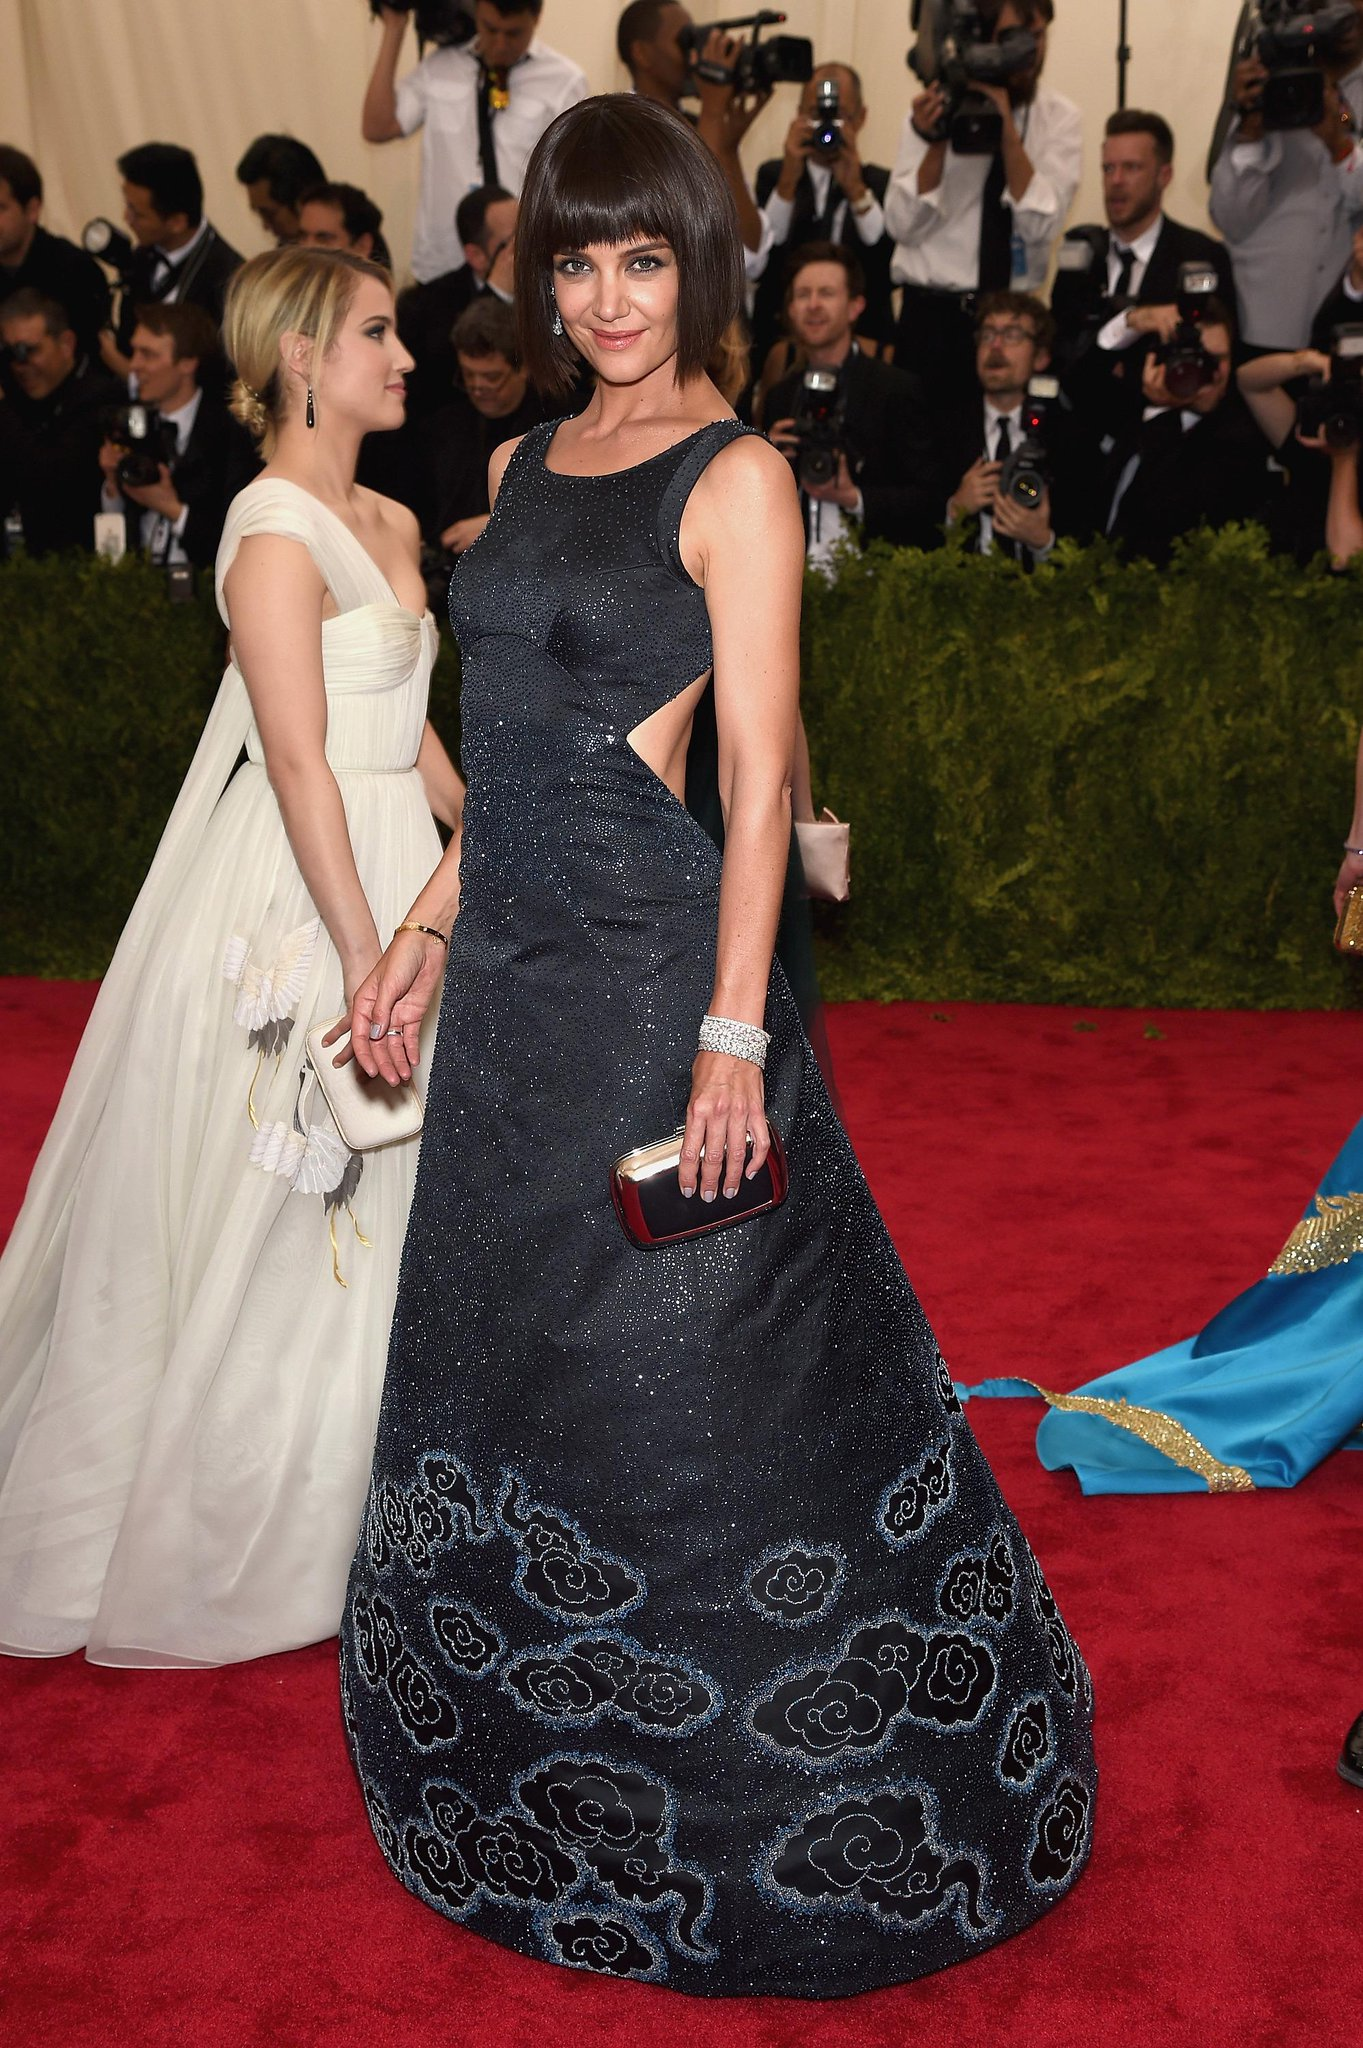 Breathe, everyone. We just got confirmation that Katie Holmes did NOT cut her hair. it's a wig. #MetGala http://t.co/Q6siD0IHIt